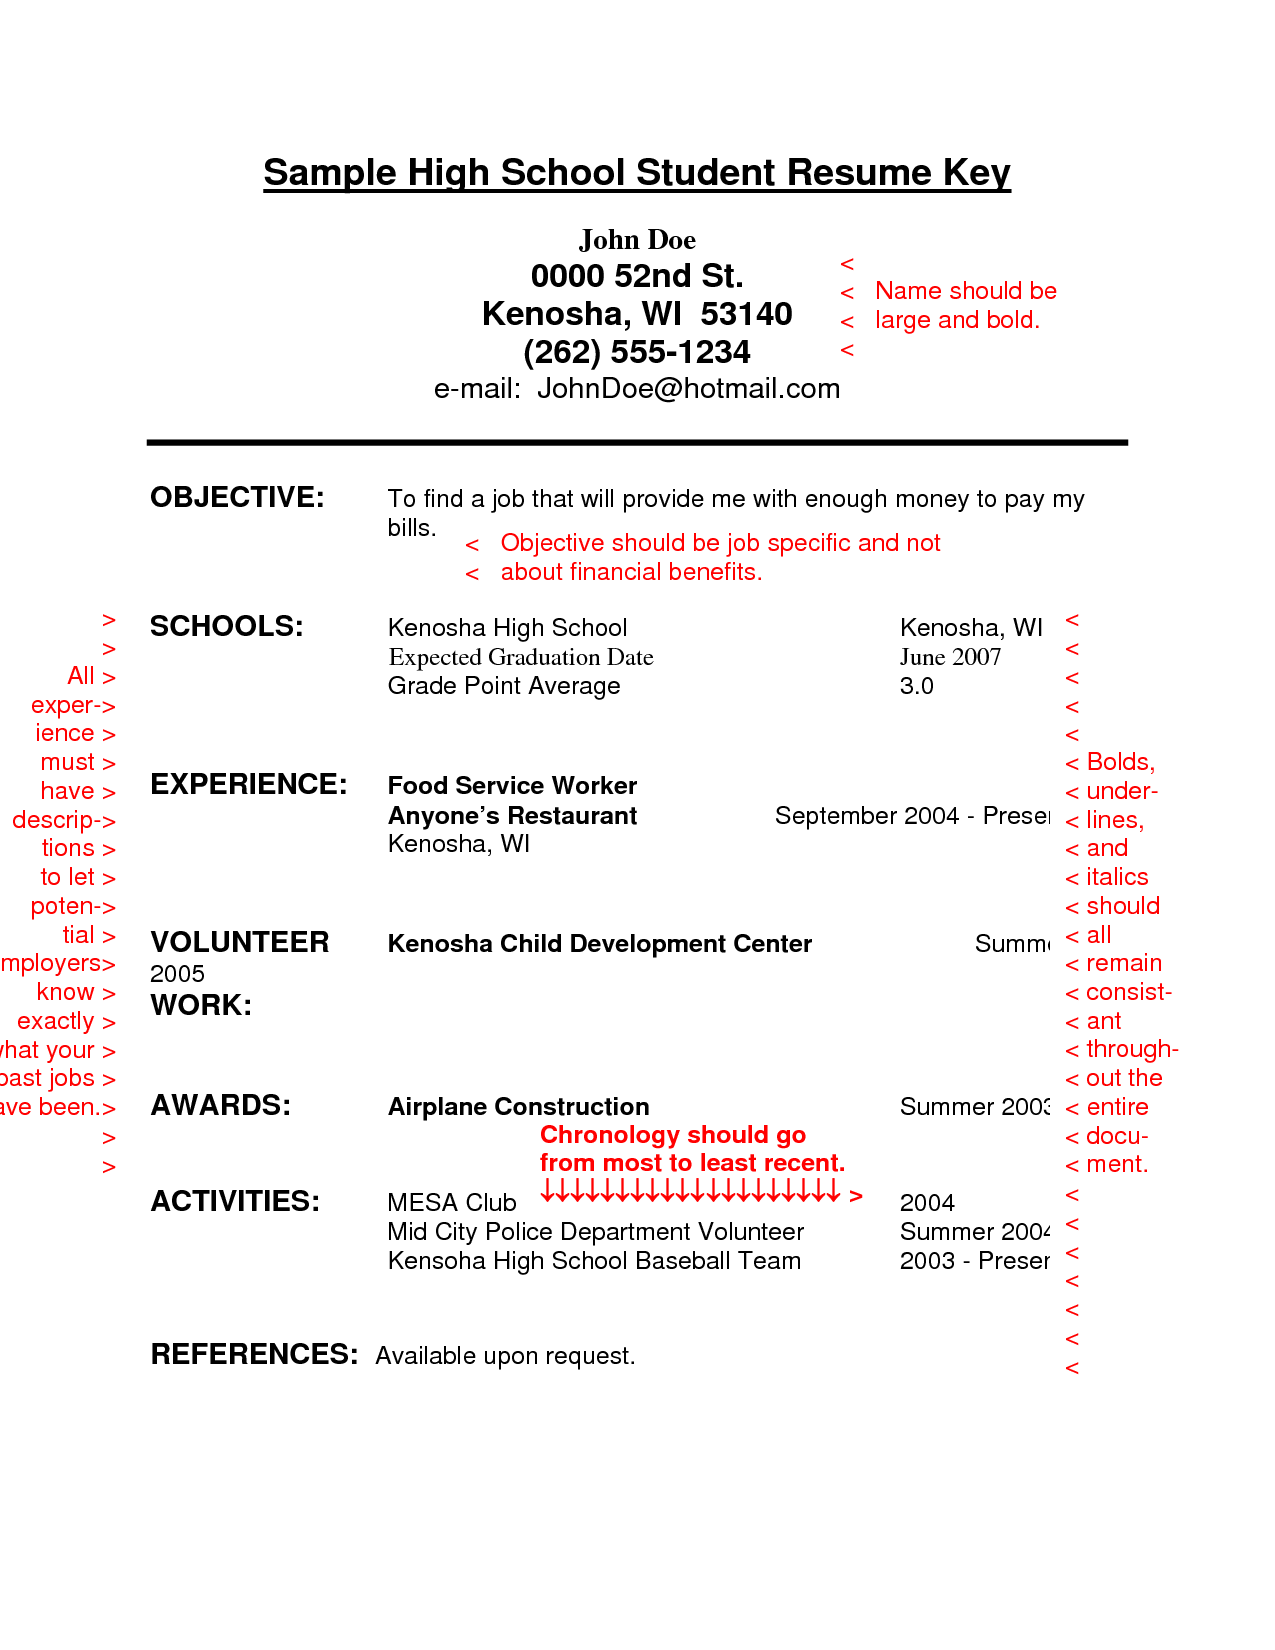 Resume Sample For High School Students With No Experience -  Http://www.resumecareer.info/resume-Sample -For-High-School-Students-With-No-Experience-11/